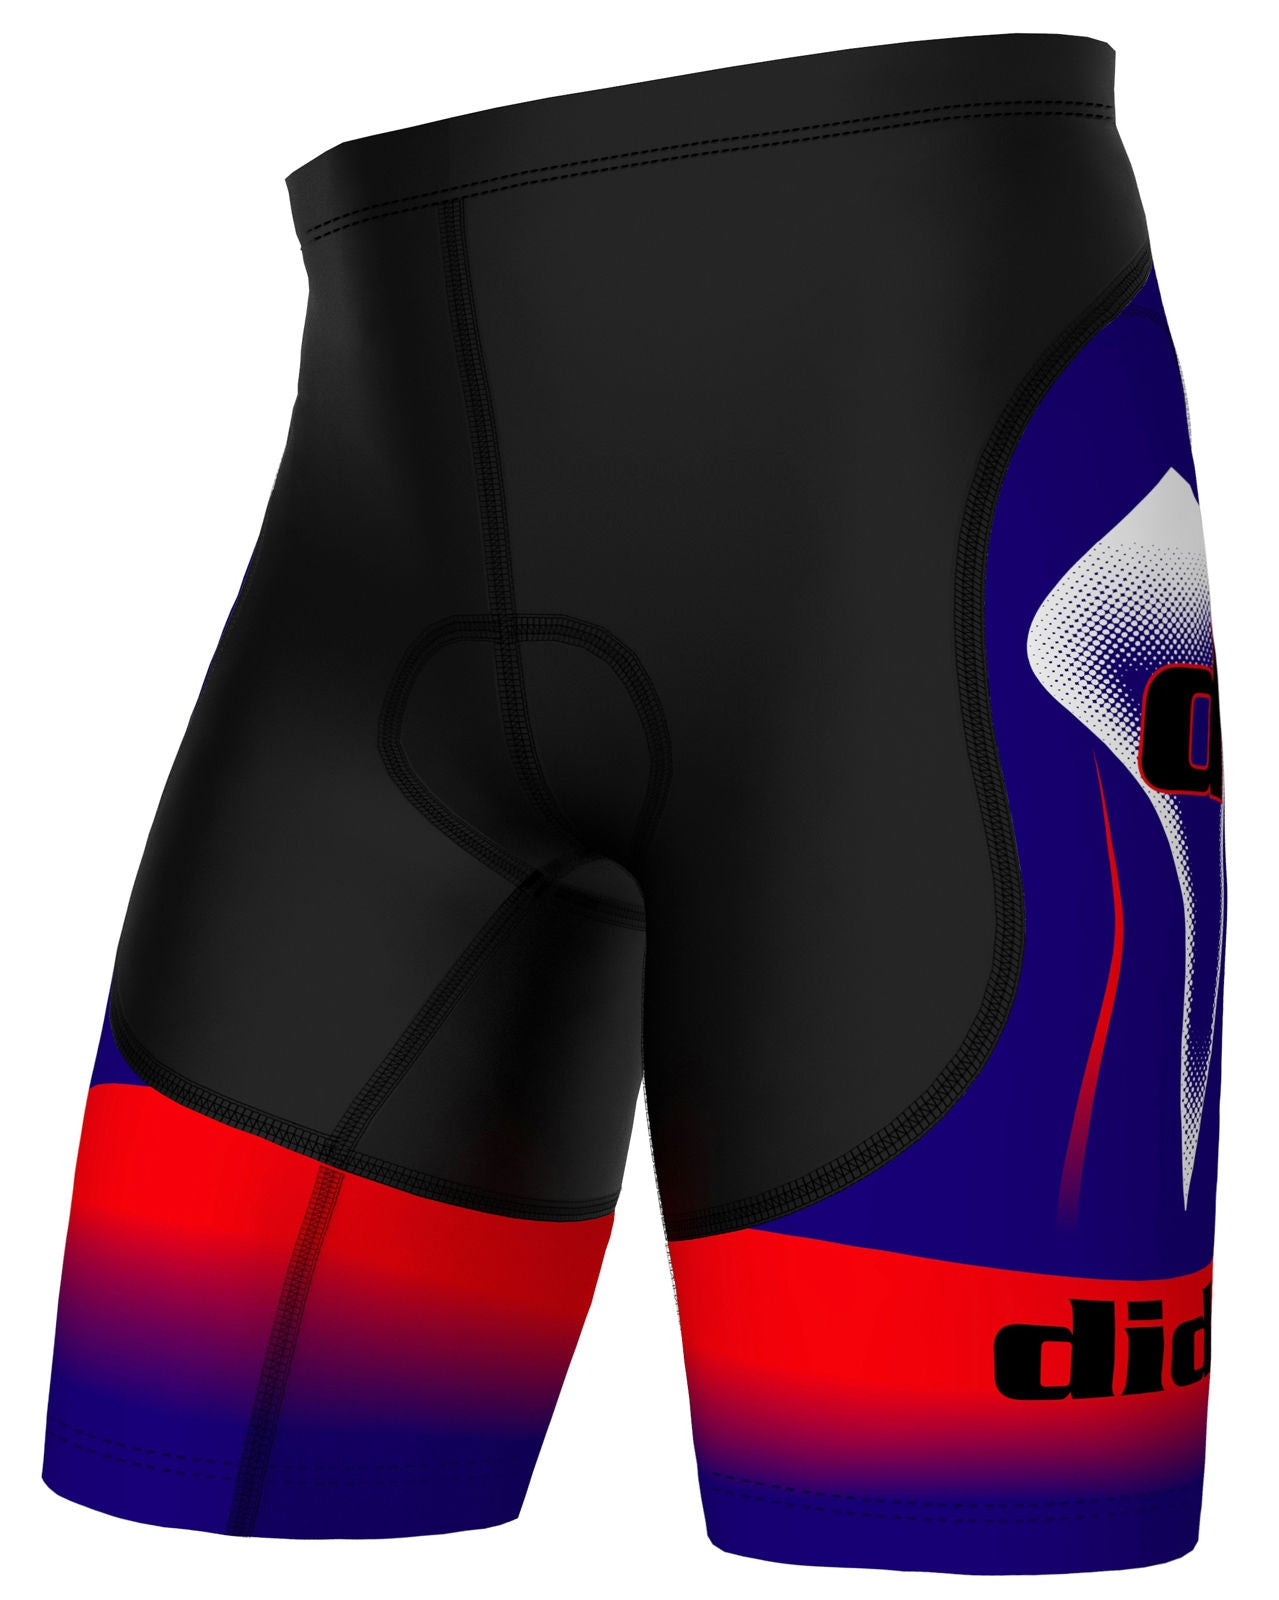 Blue Red and Black Padded Cycling Shorts